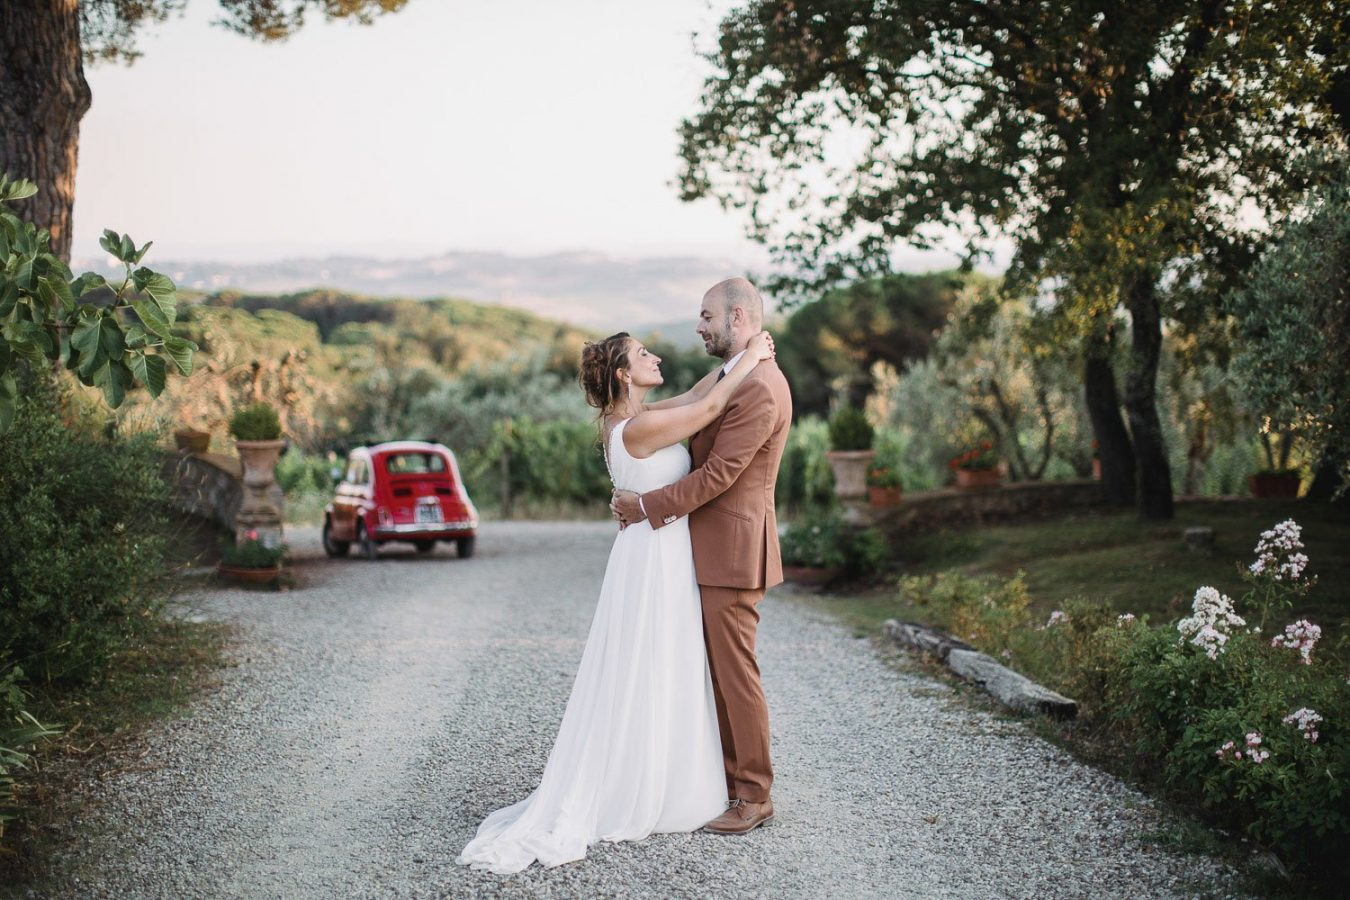 duesudue_wedding_photographer_tuscany-45